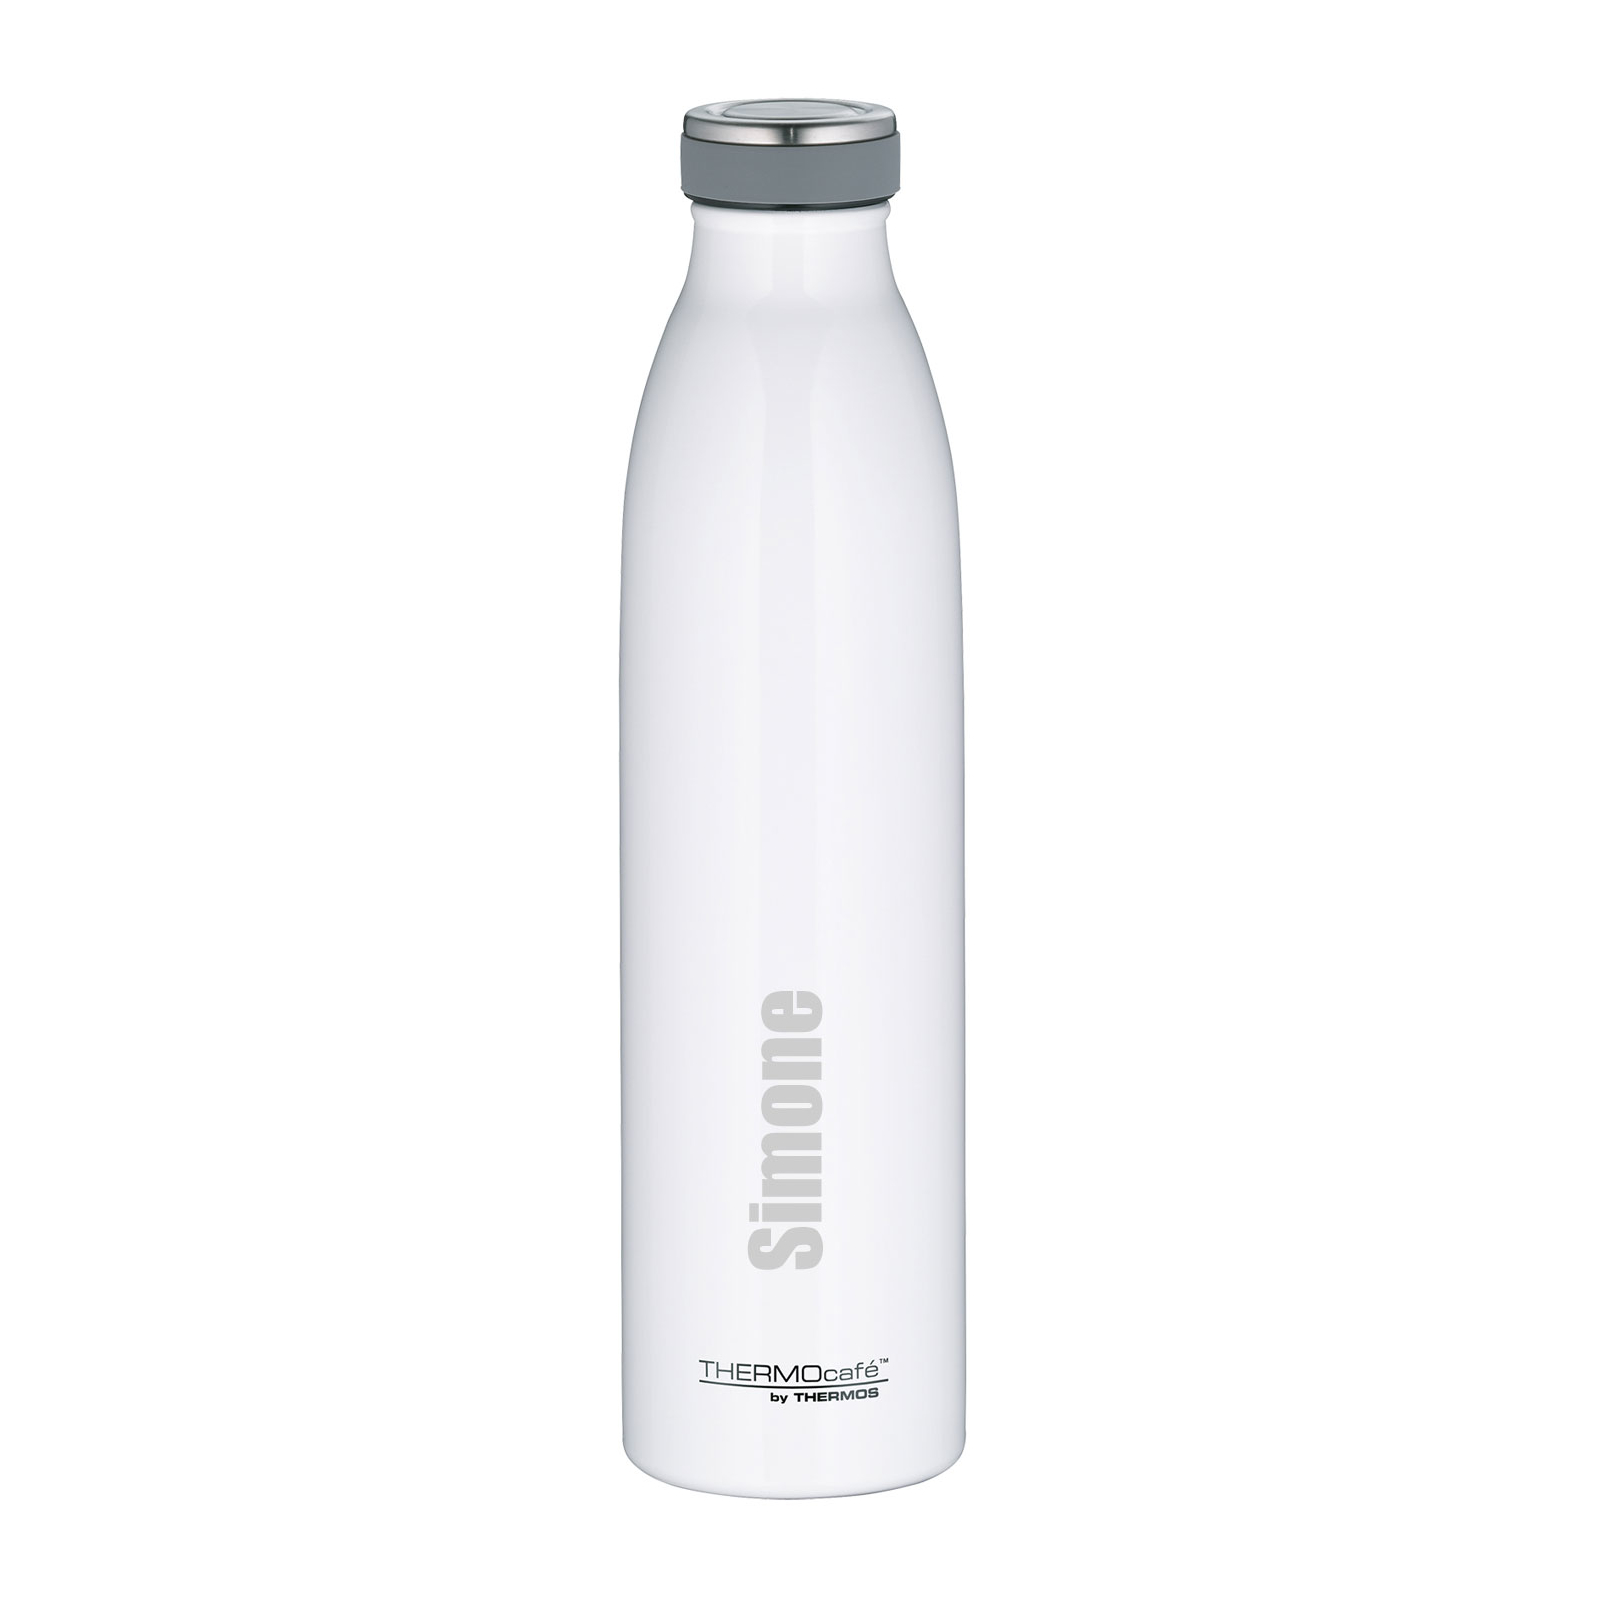 Personalisierte TC Bottle Thermosflasche Weiß 0,75 Liter Isolierflasche